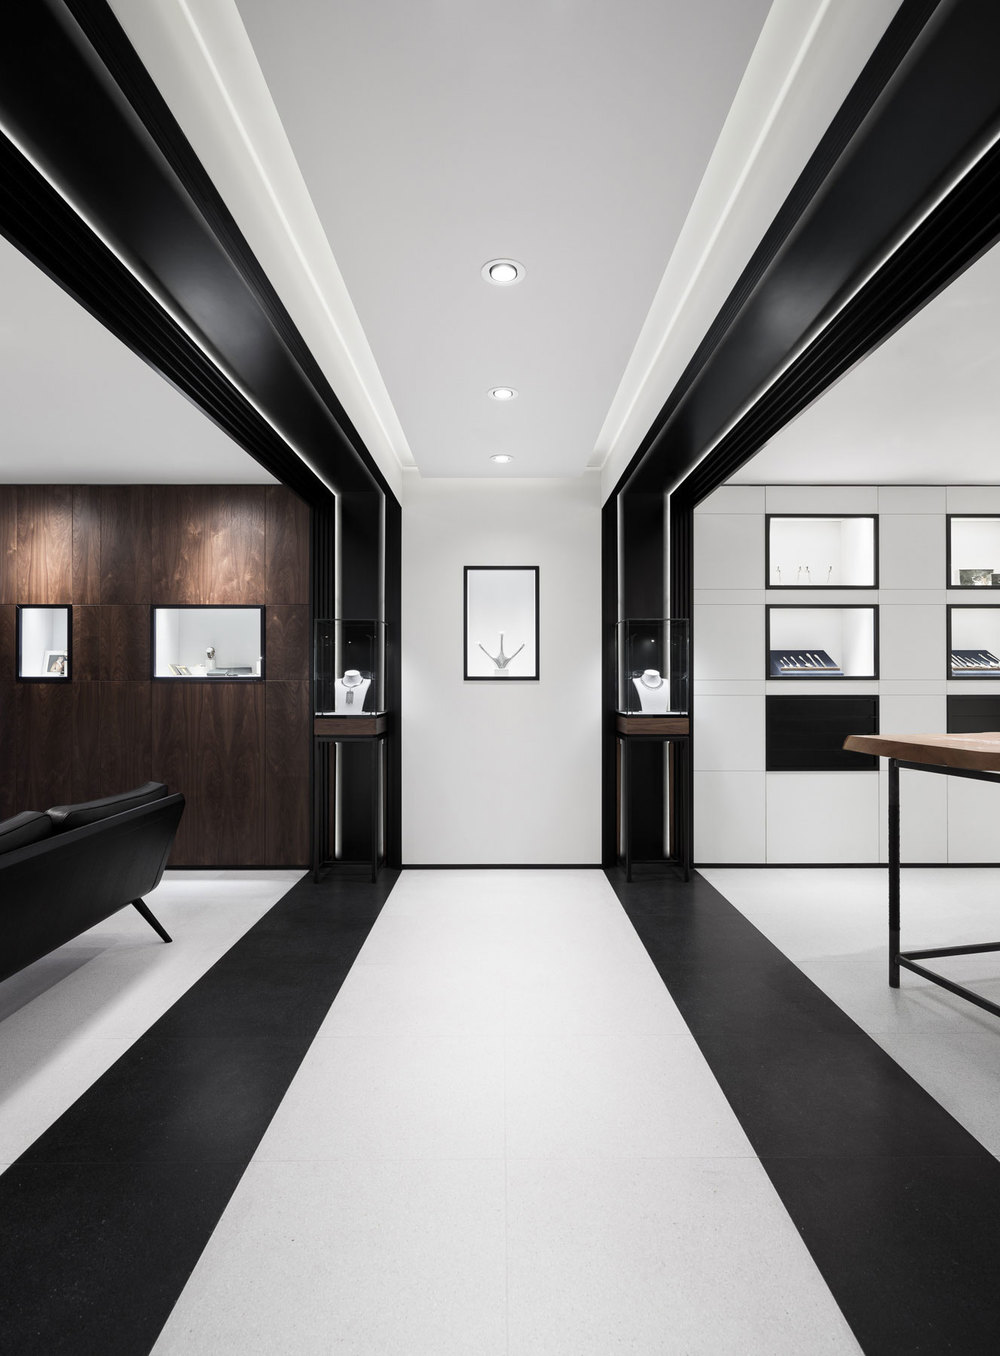 David Thulstrup Designs Symmetrical Space For Georg Jensen